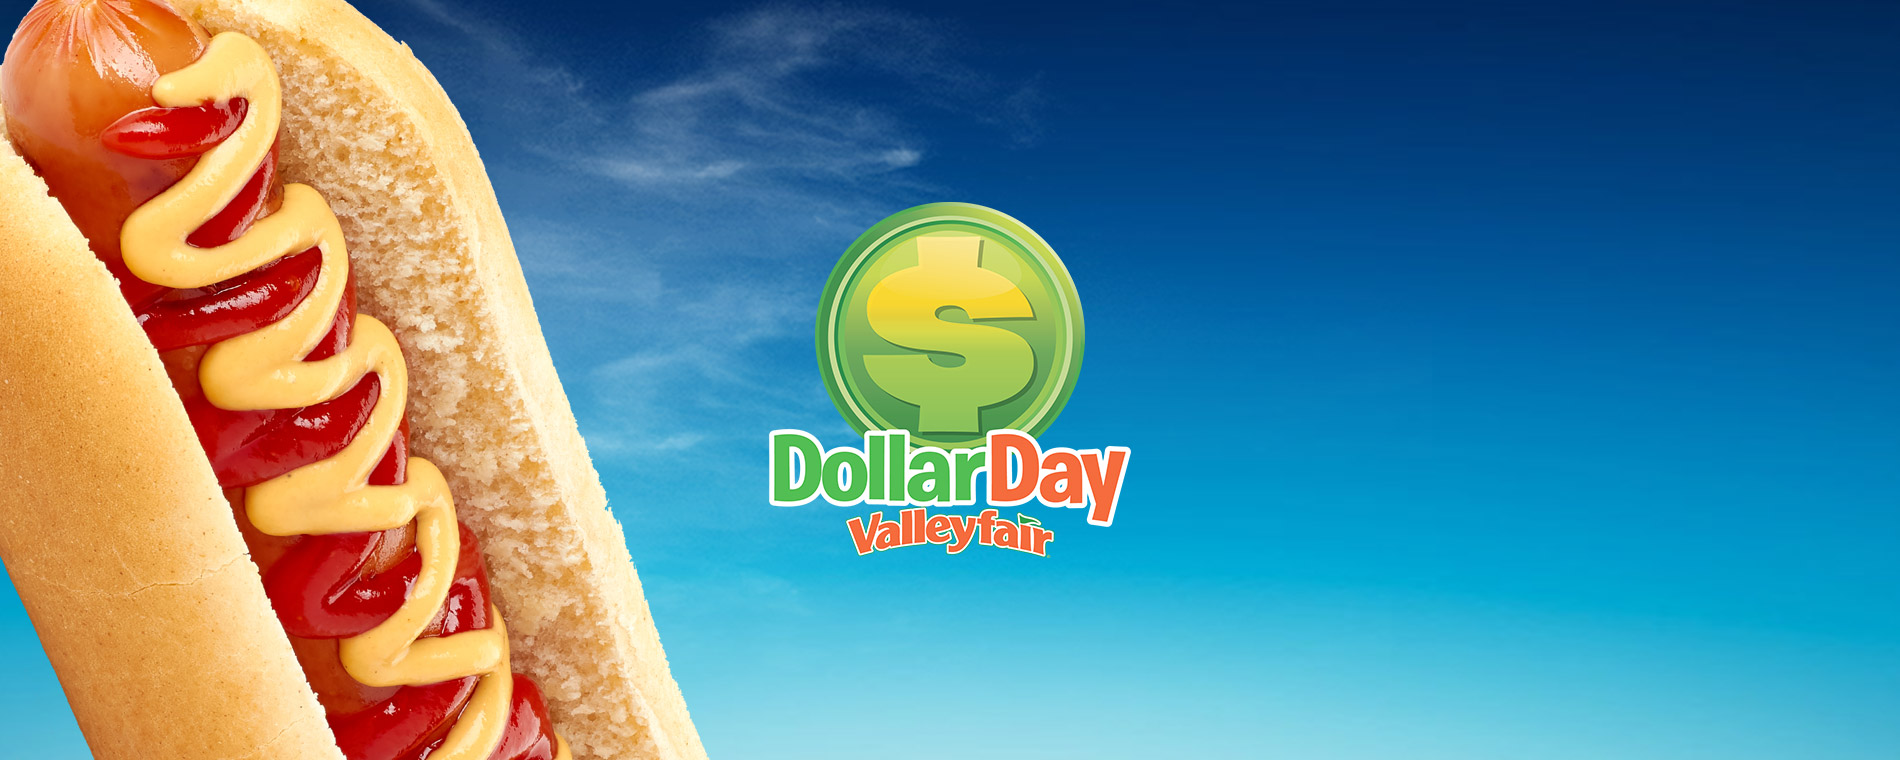 Dollar Days at Valleyfair